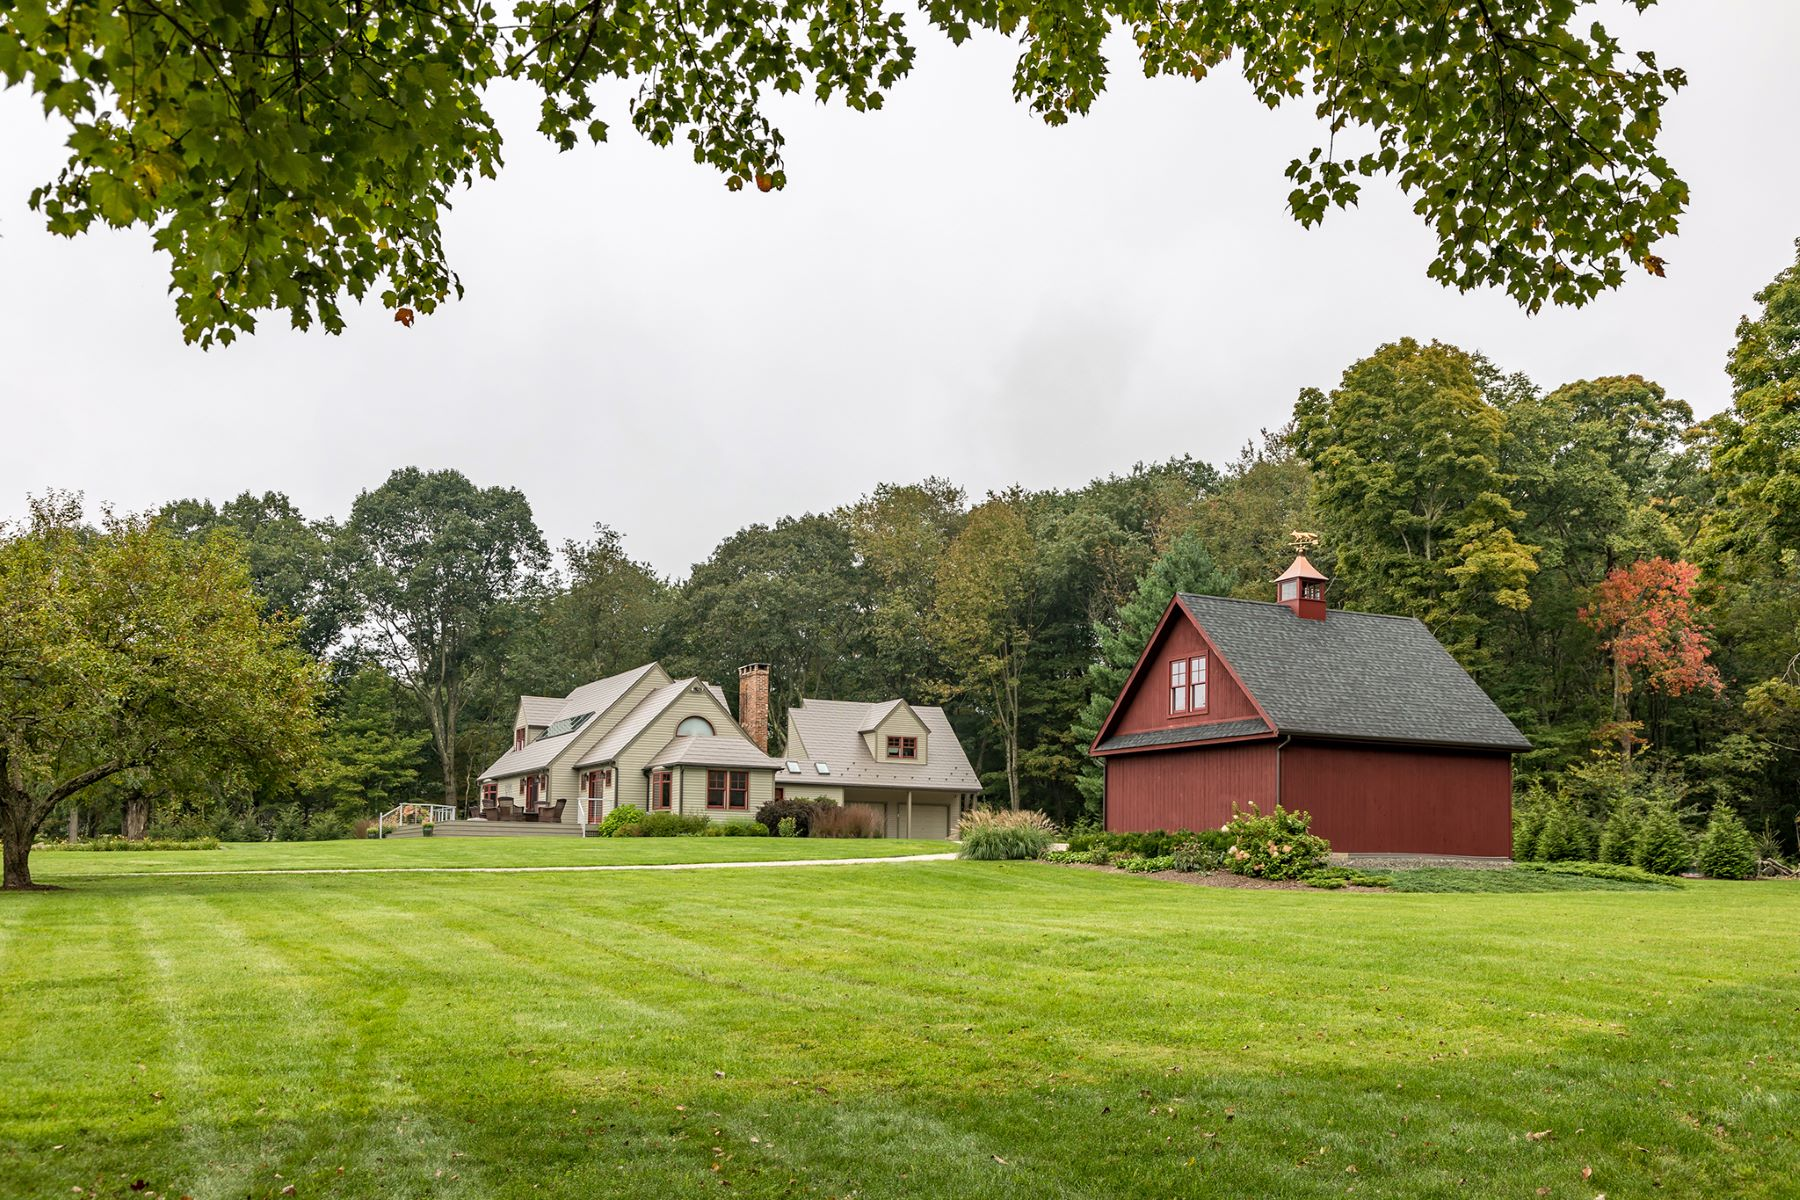 Single Family Home for Sale at Extraordinary Contemporary with 4.9 acres 15 Maple Ridge Litchfield, Connecticut 06759 United States